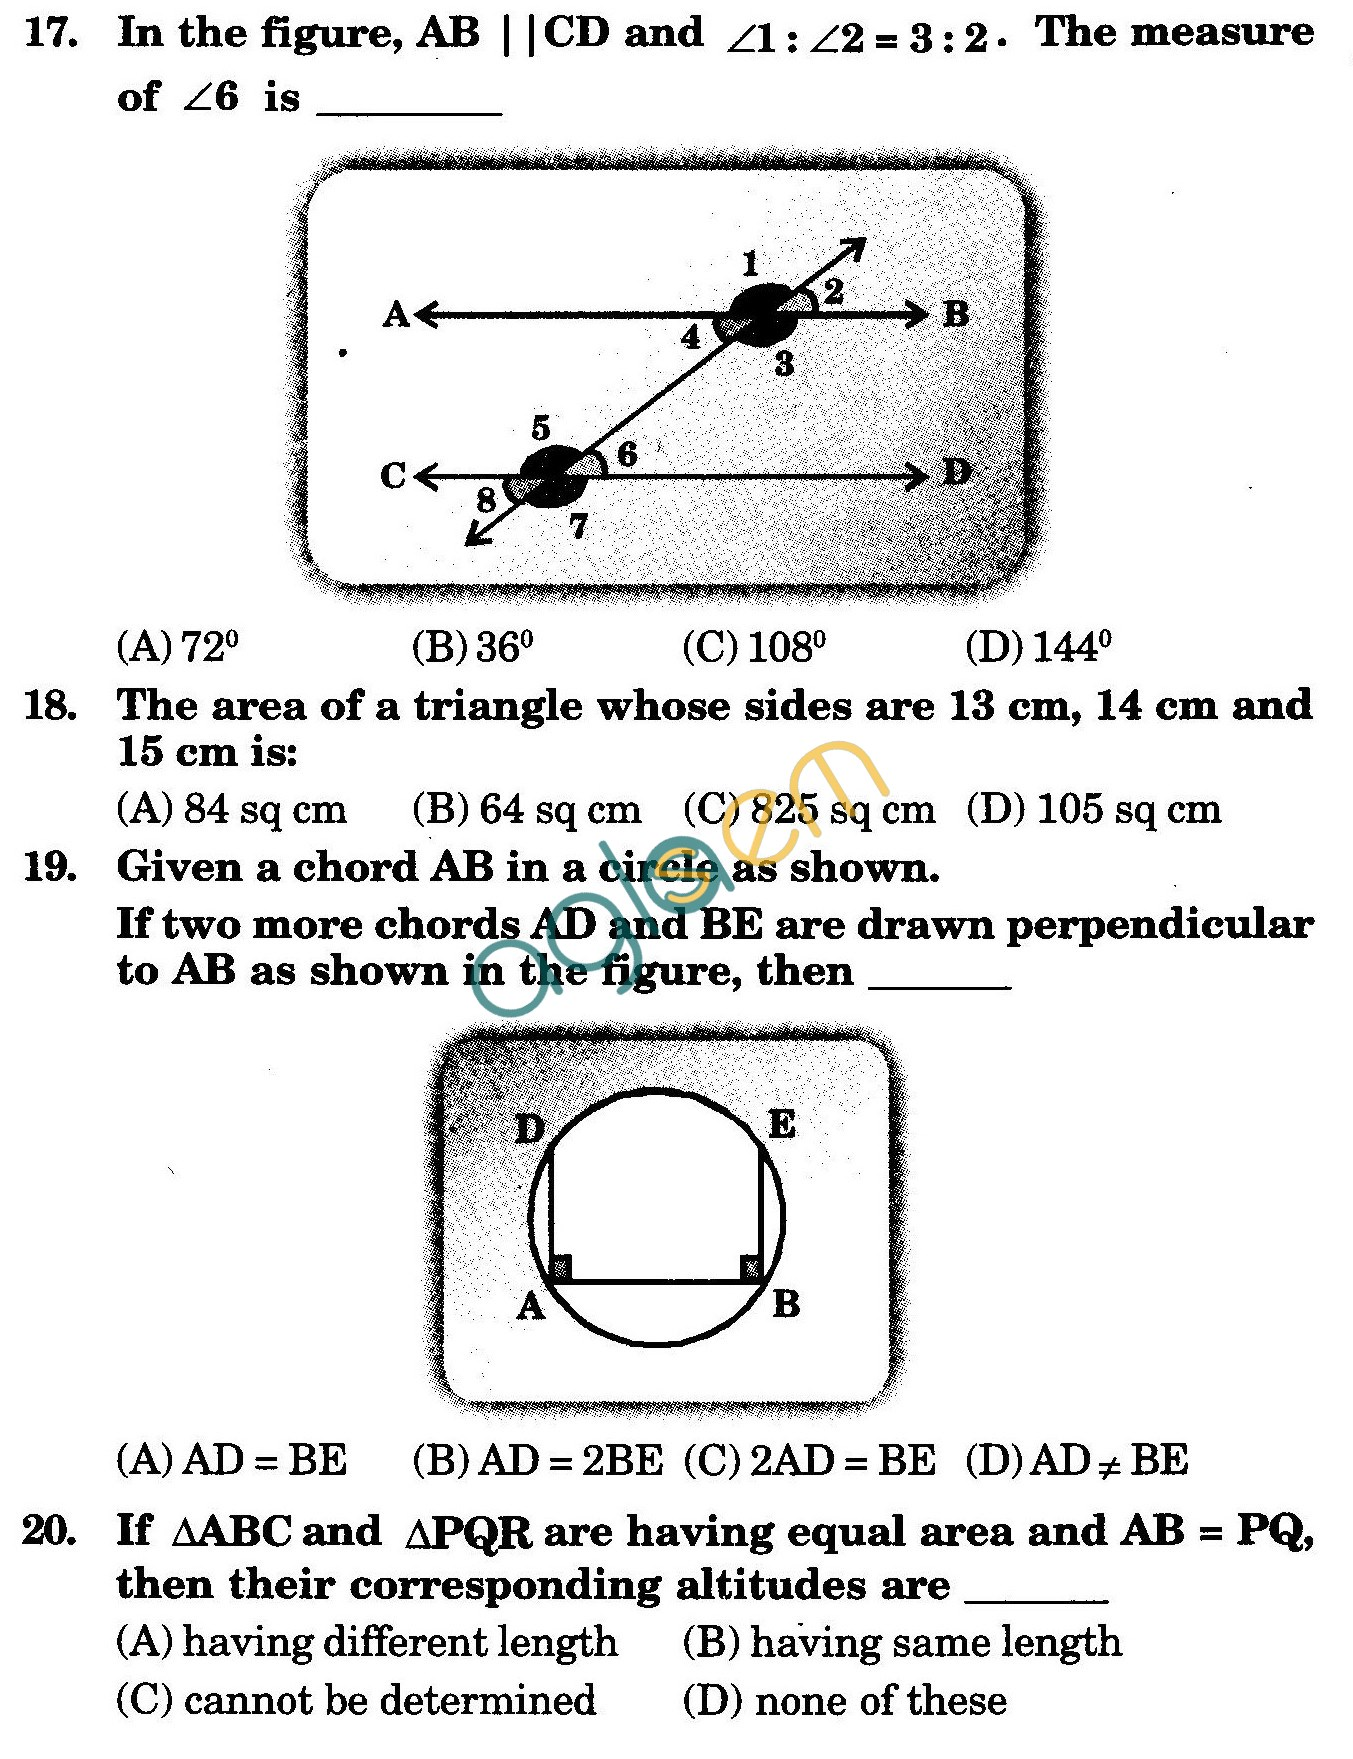 NSTSE 2009 Class IX Question Paper with Answers - Mathematics